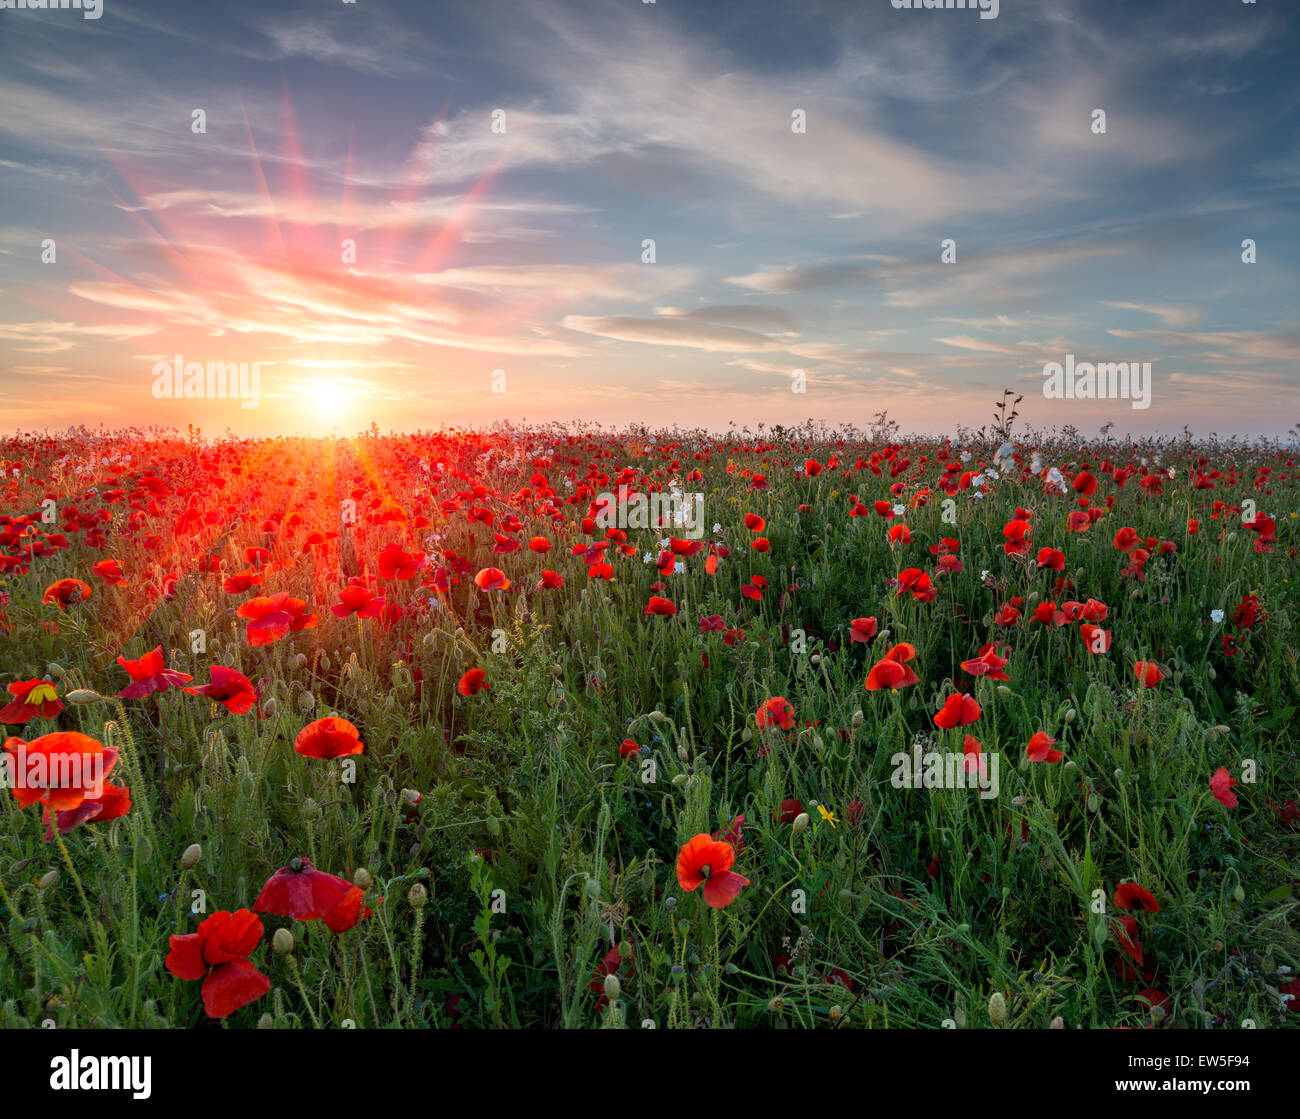 Sunset over a field of vibrant red Poppies and wildflowers - Stock Image